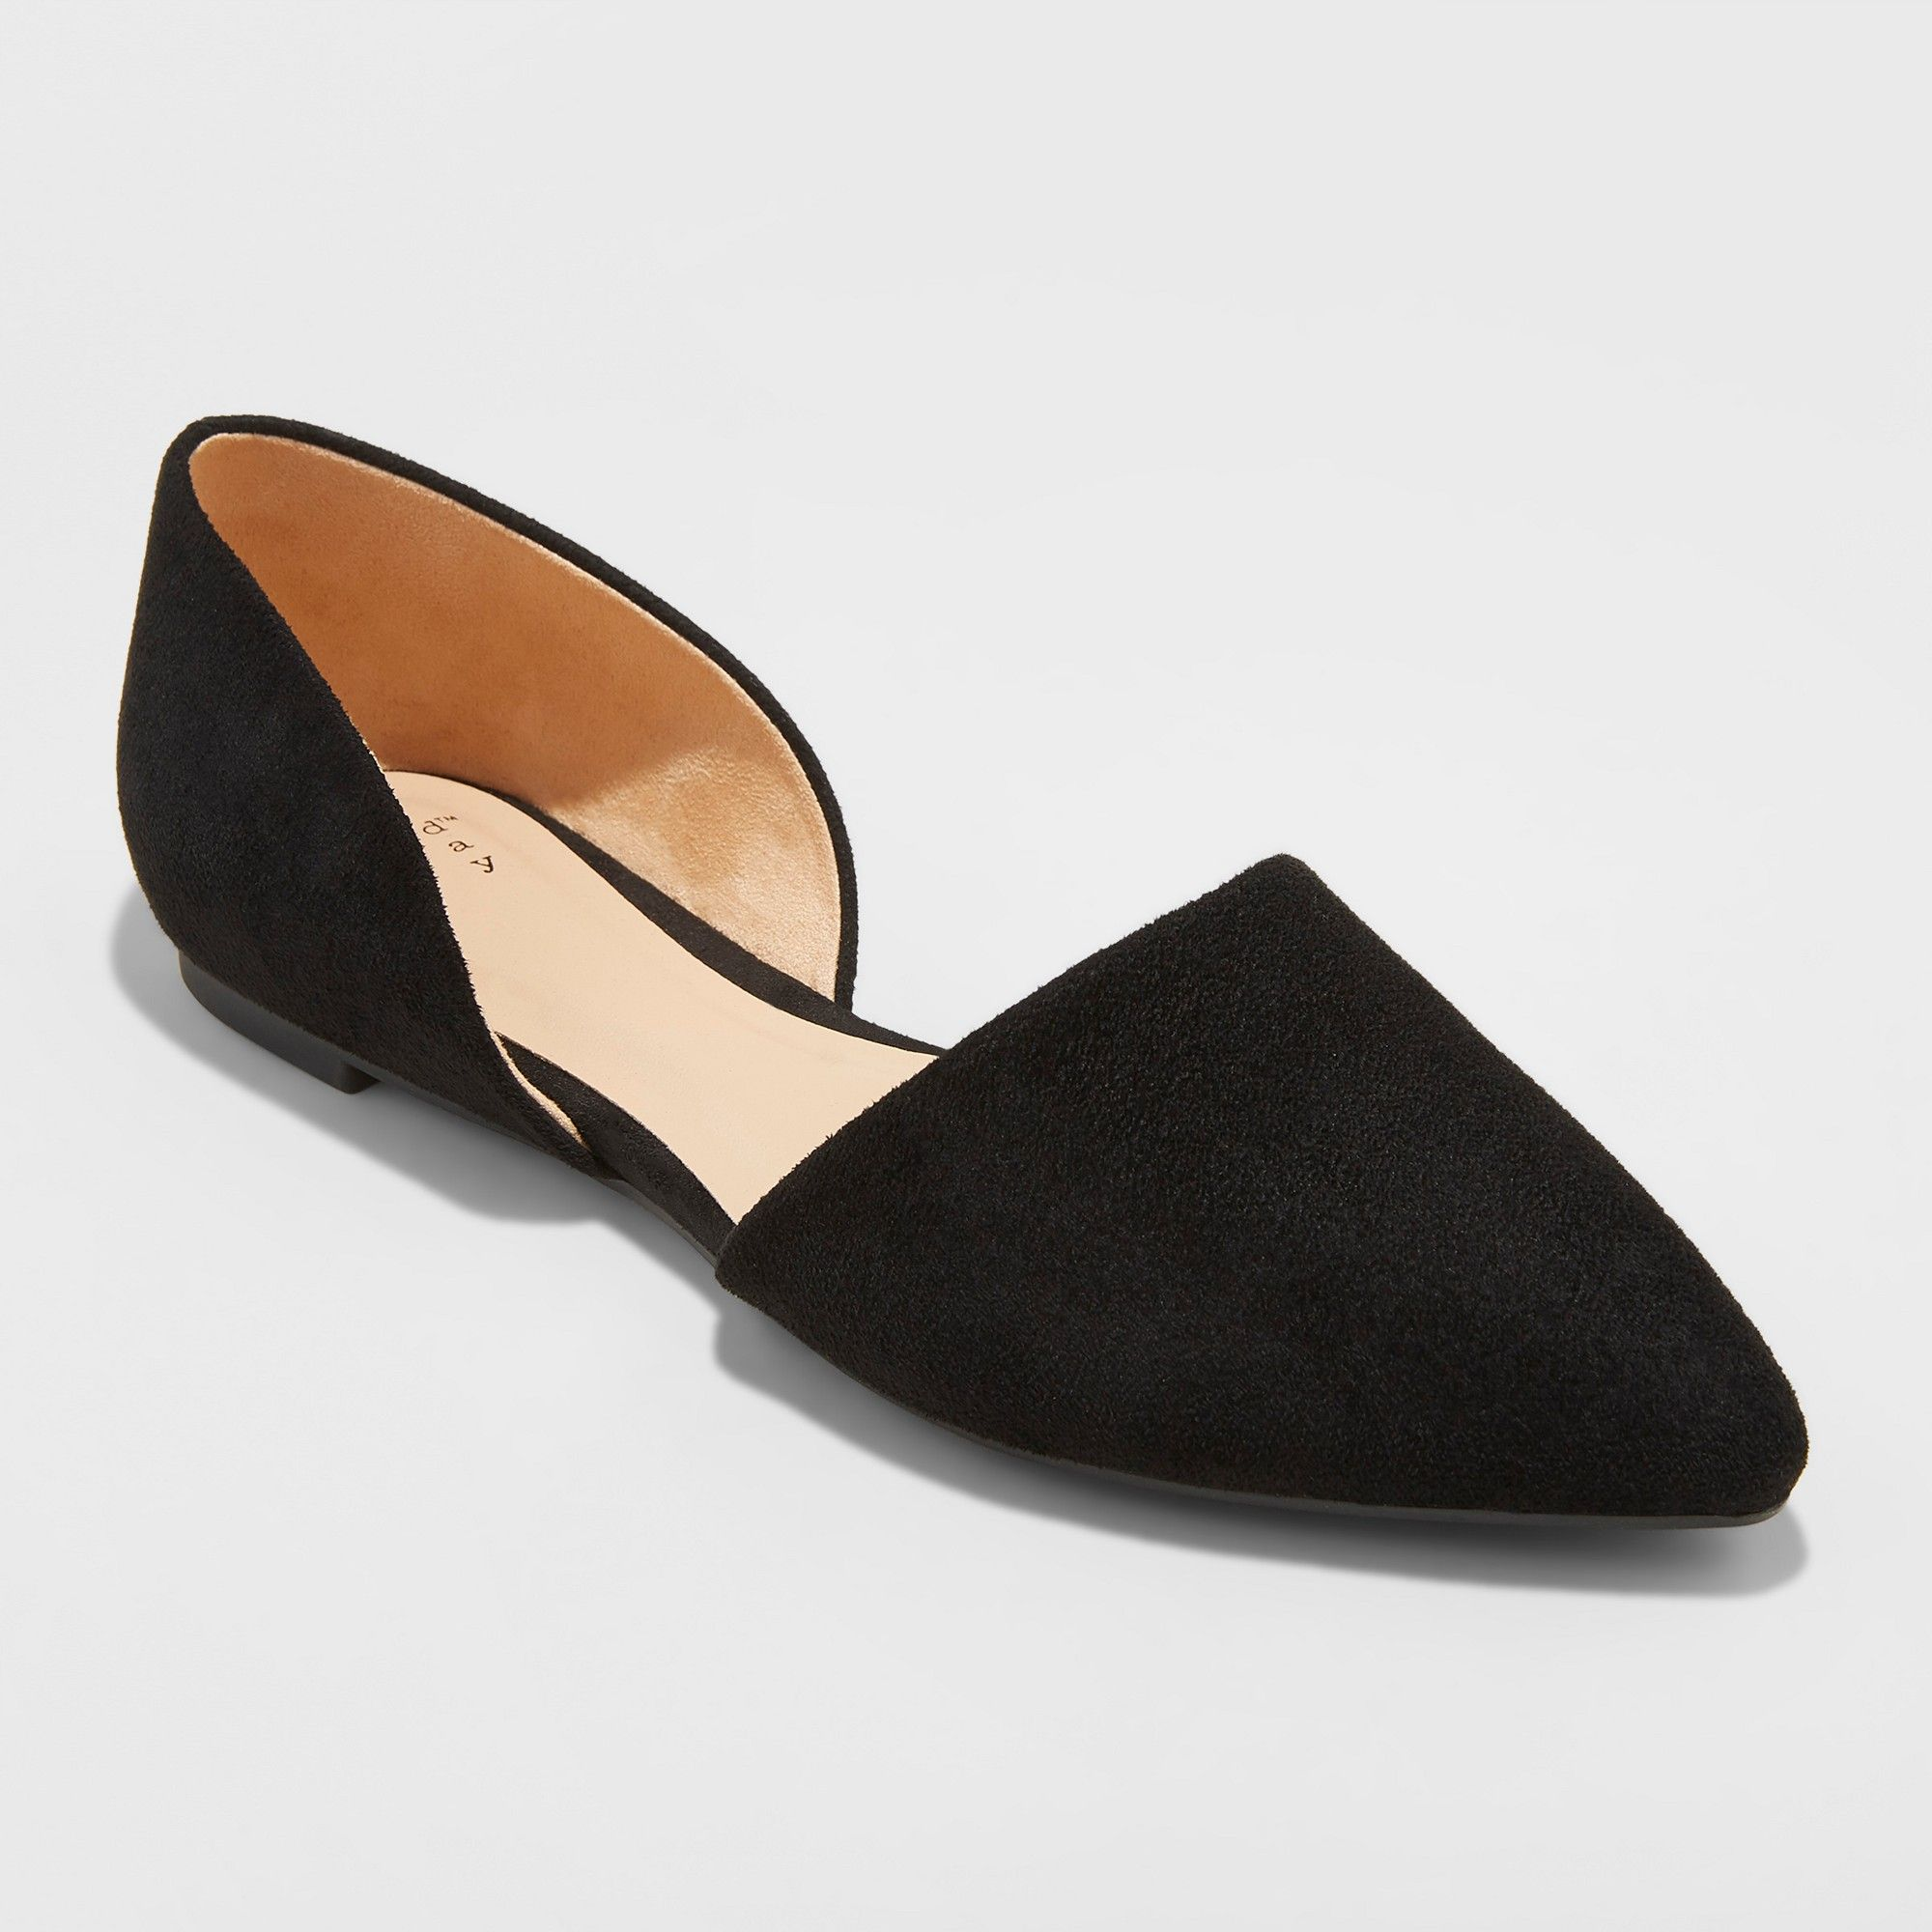 f63a2f9bffc Women s Rebecca Microsuede Wide Width Pointed Two Piece Ballet Flats - A New  Day Black 7.5W